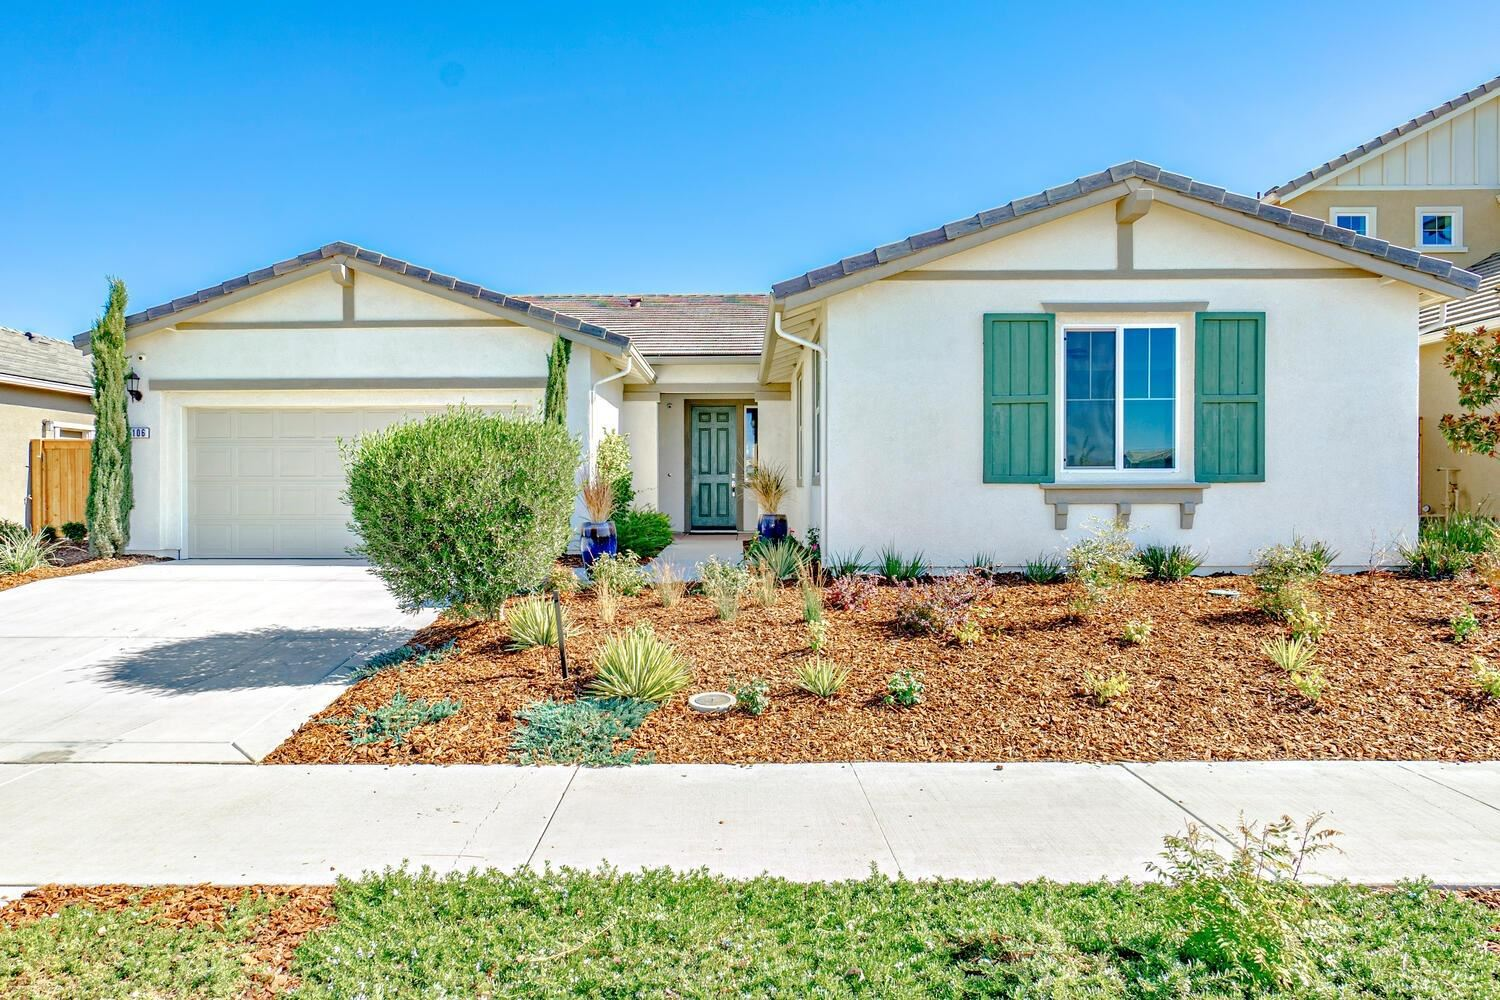 Photo of 5106 Summerfaire Drive, Roseville, CA 95747 (MLS # 20063509)